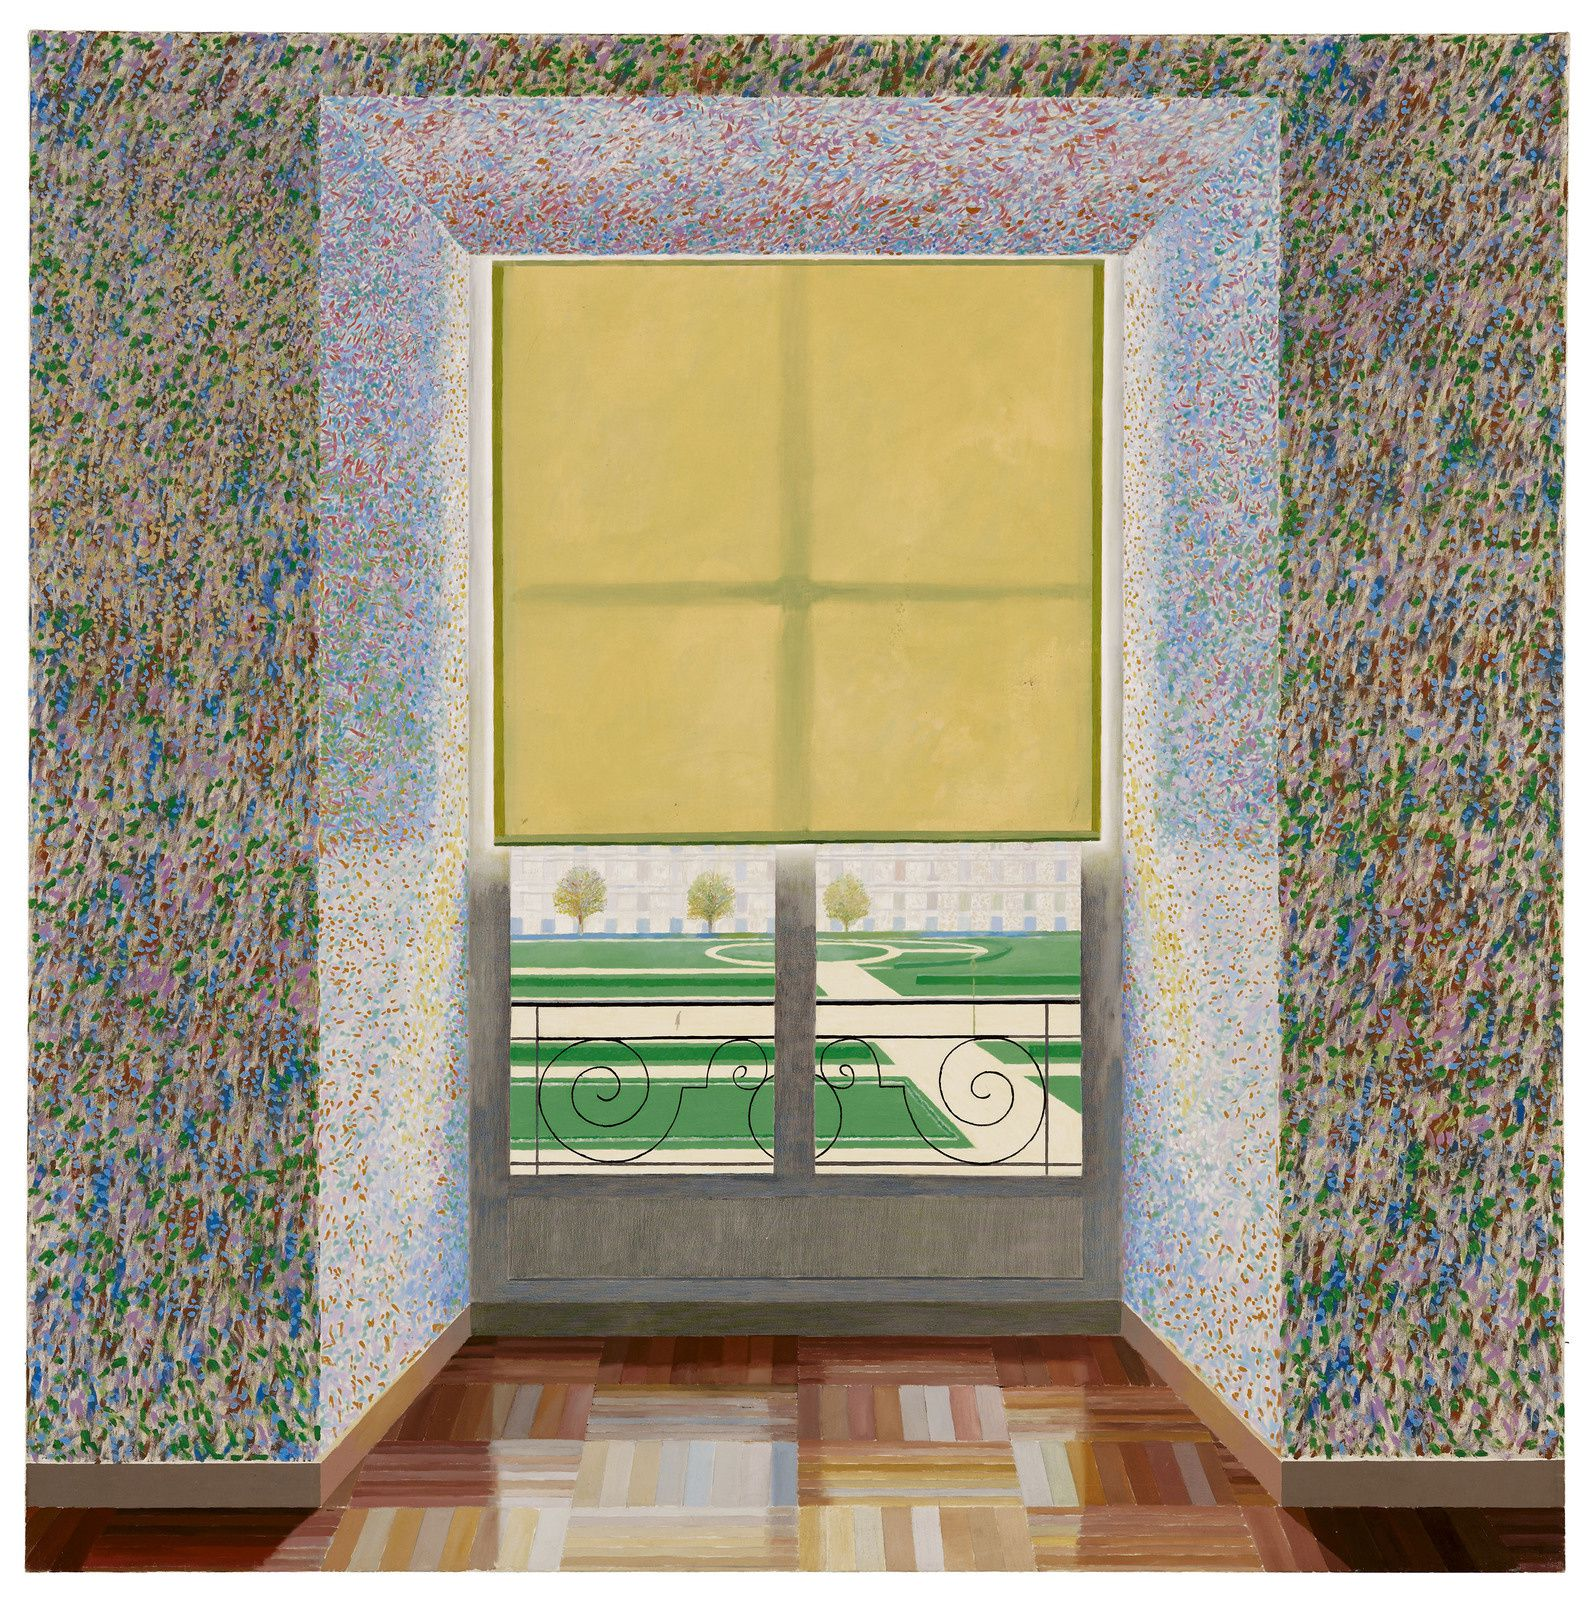 """""""Contre-jour in the French Style"""", 1974 de David HOCKNEY - Courtesy Collection Ludwing Museum, Budapest"""